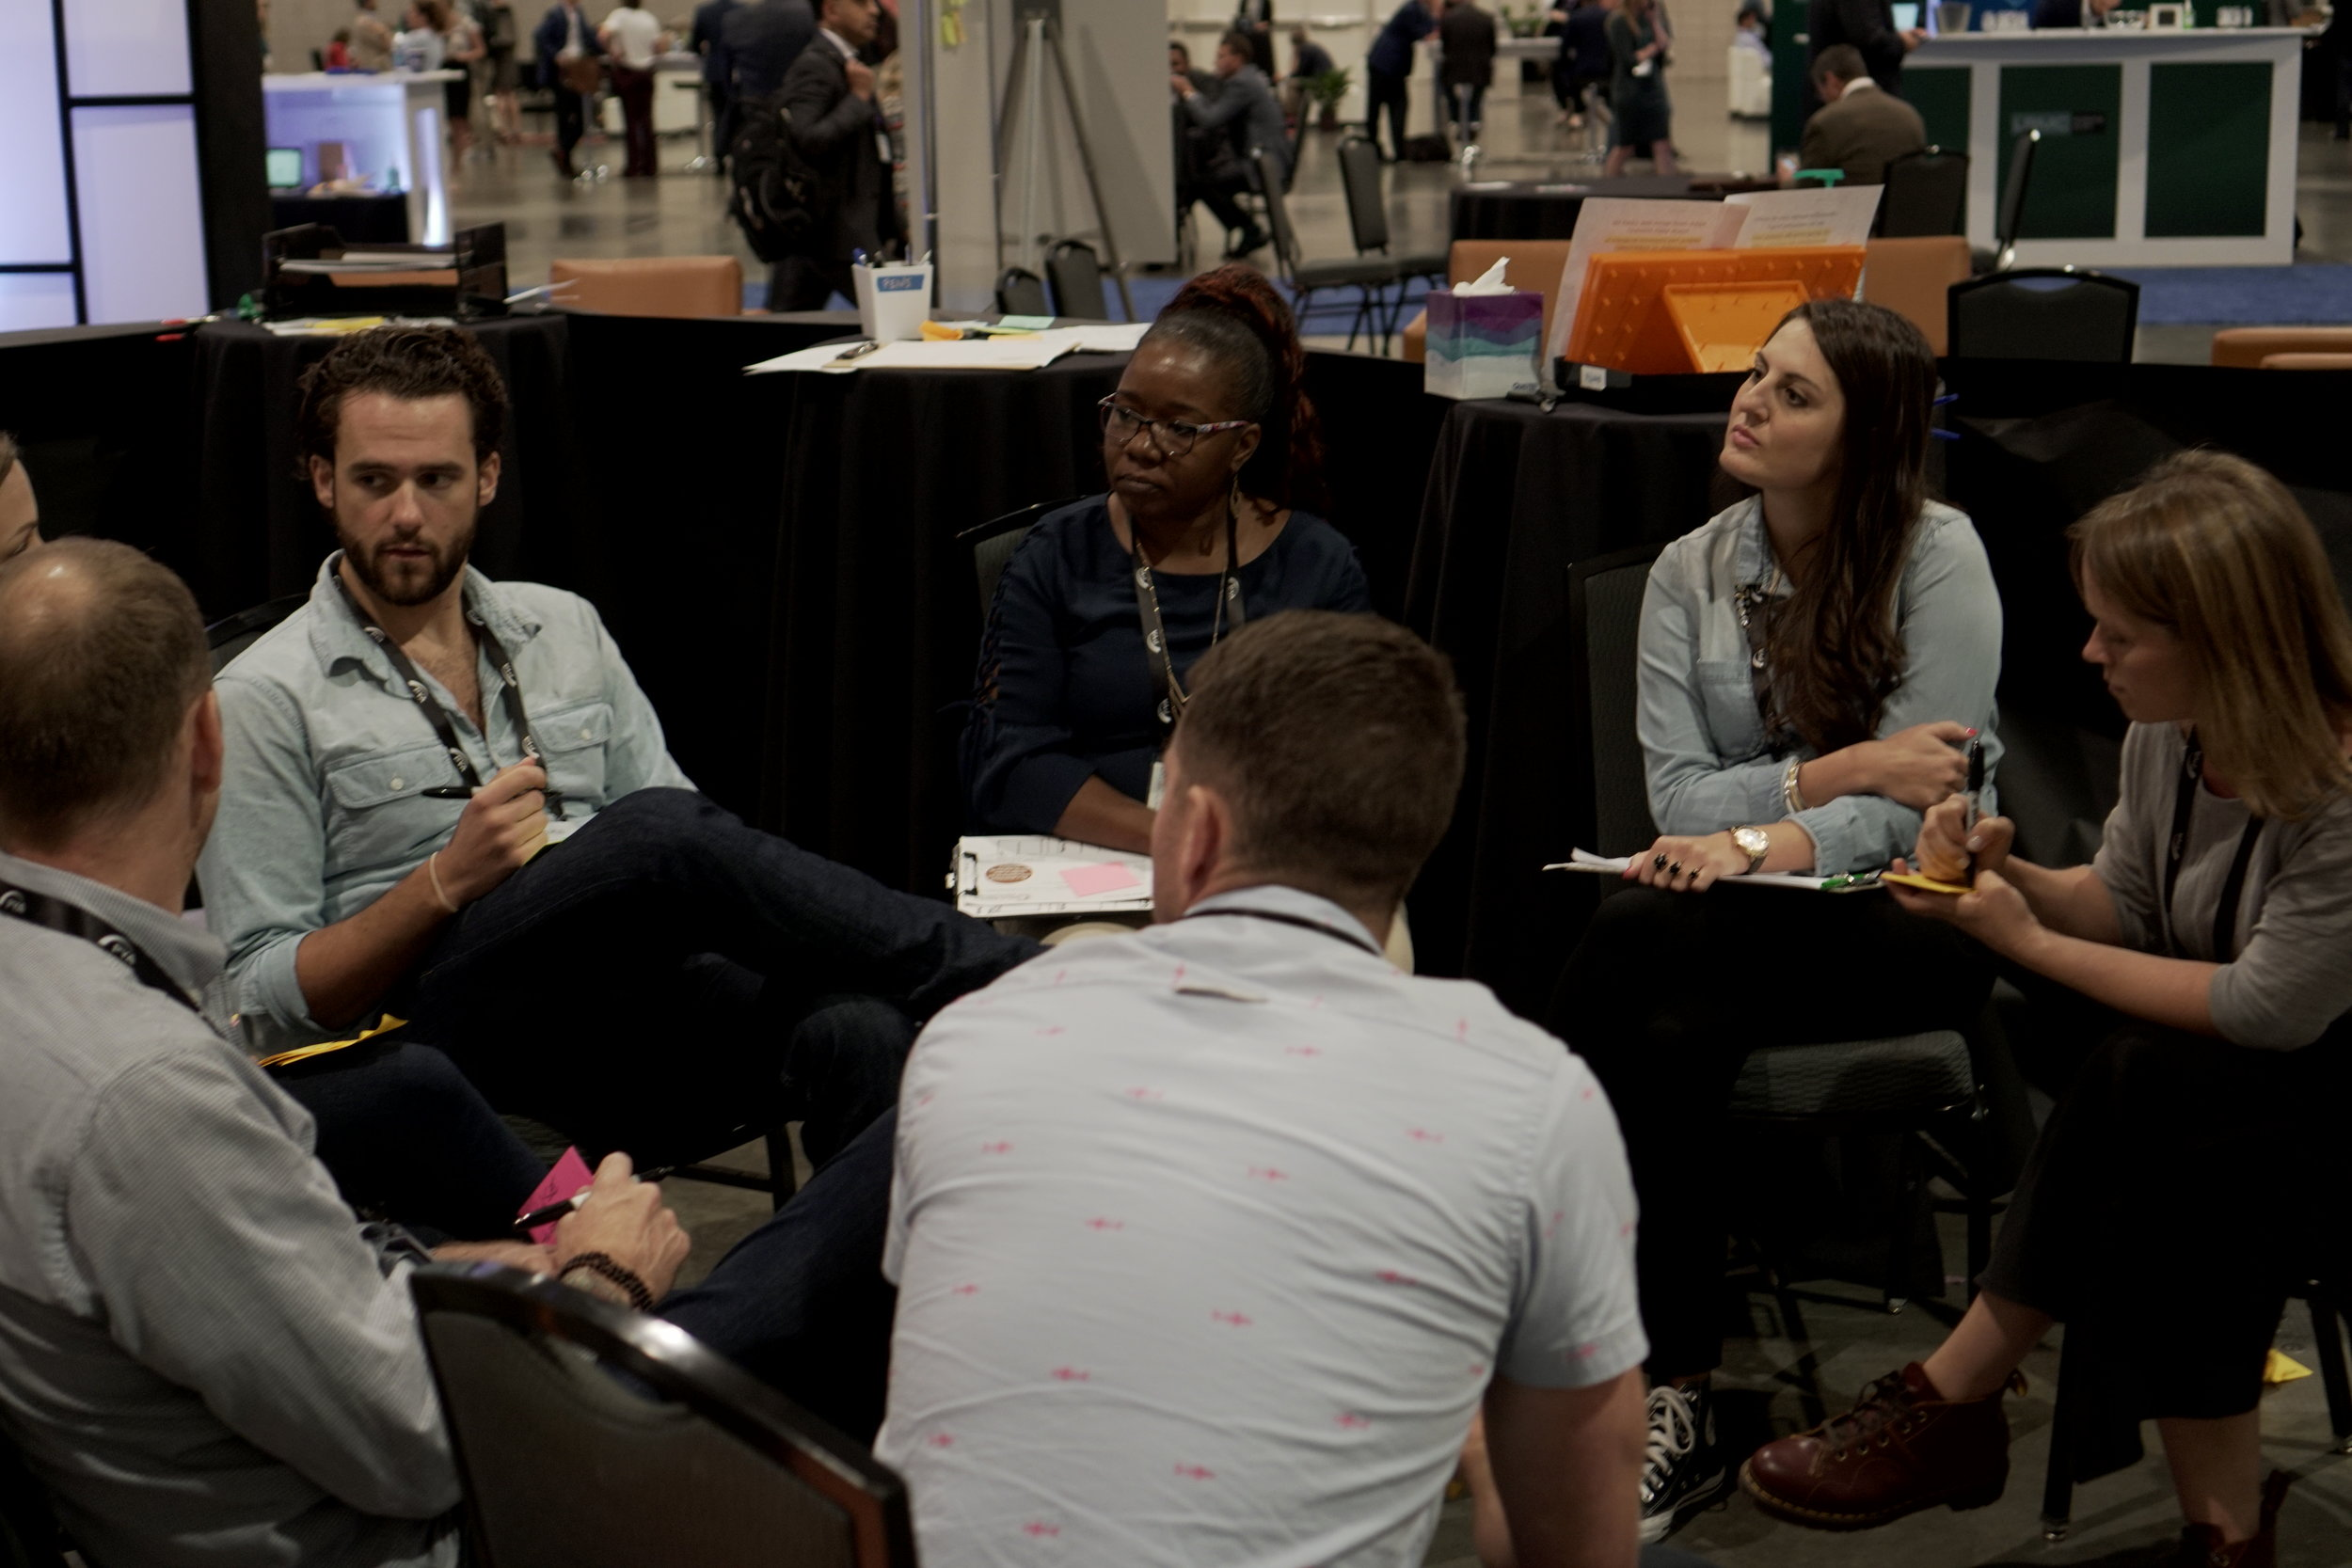 Team Debrief! - At the end of the sprint, we unpacked what worked, more importantly what didn't and how we could help ConnectUs move forward and implement some prototypes with real patients.